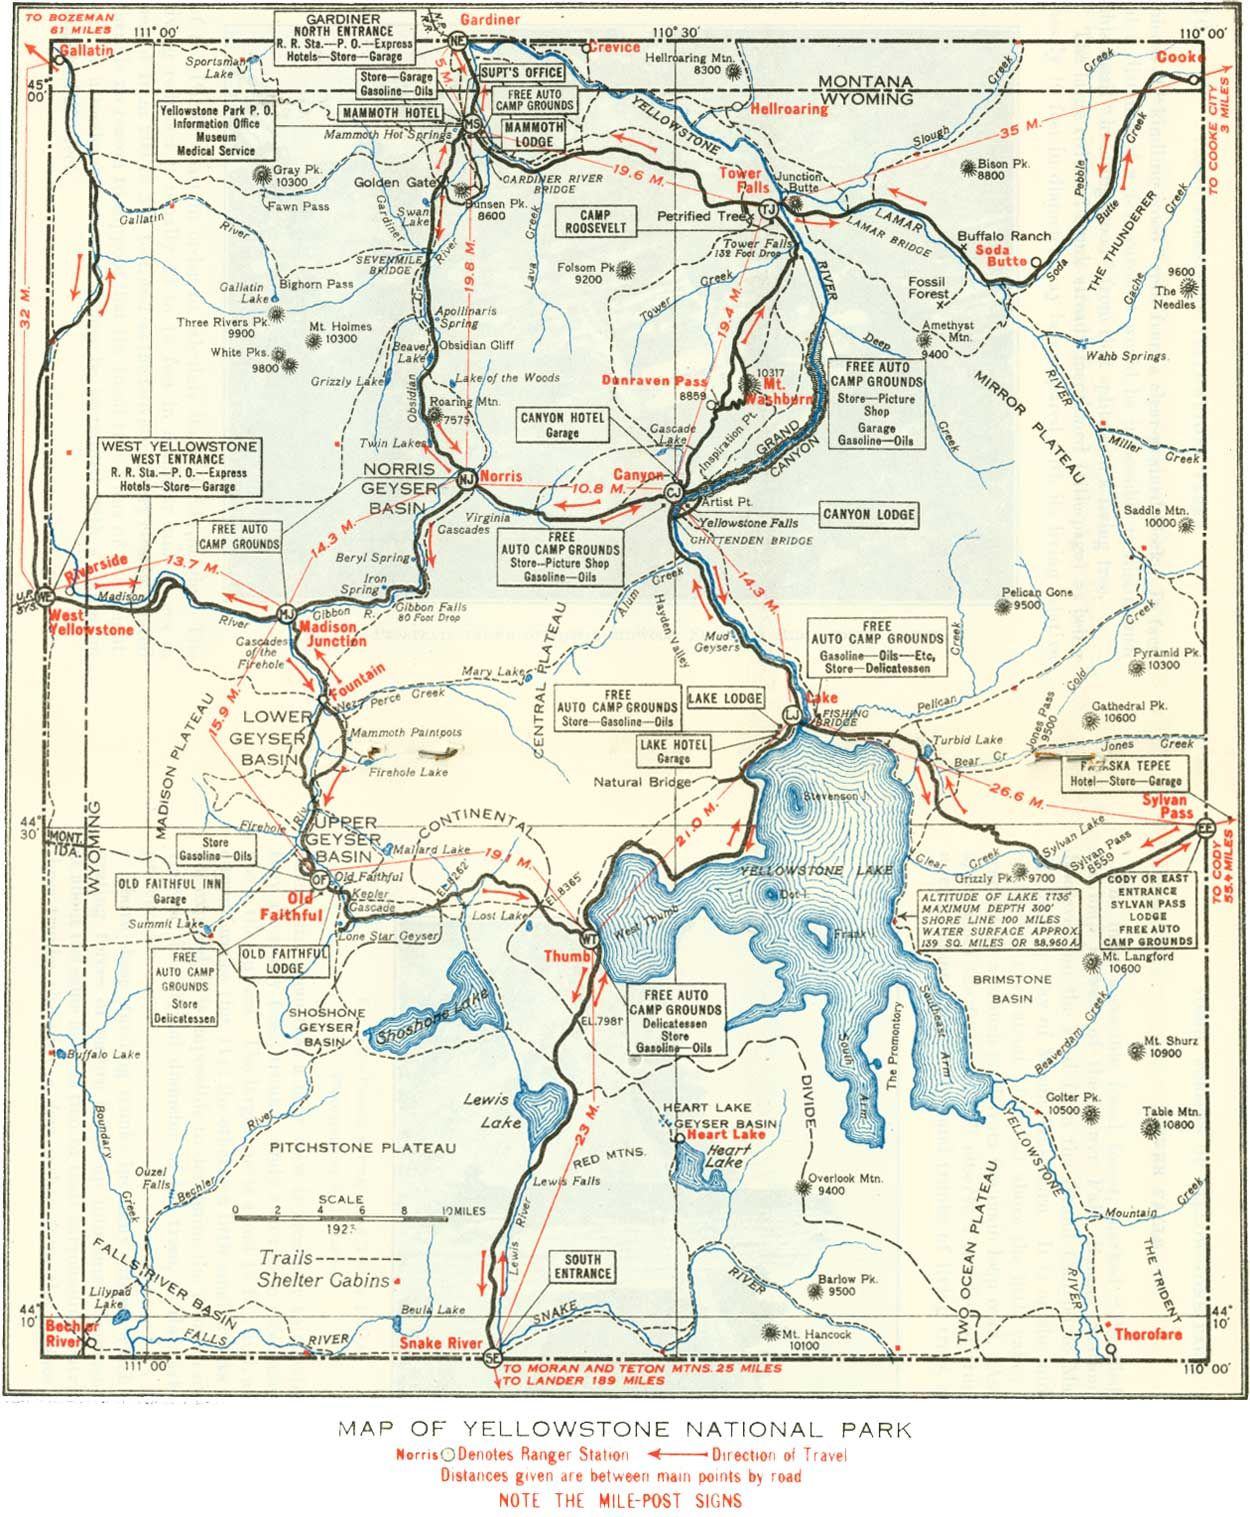 Map of Yellowstone National Park Maps Pinterest Yellowstone